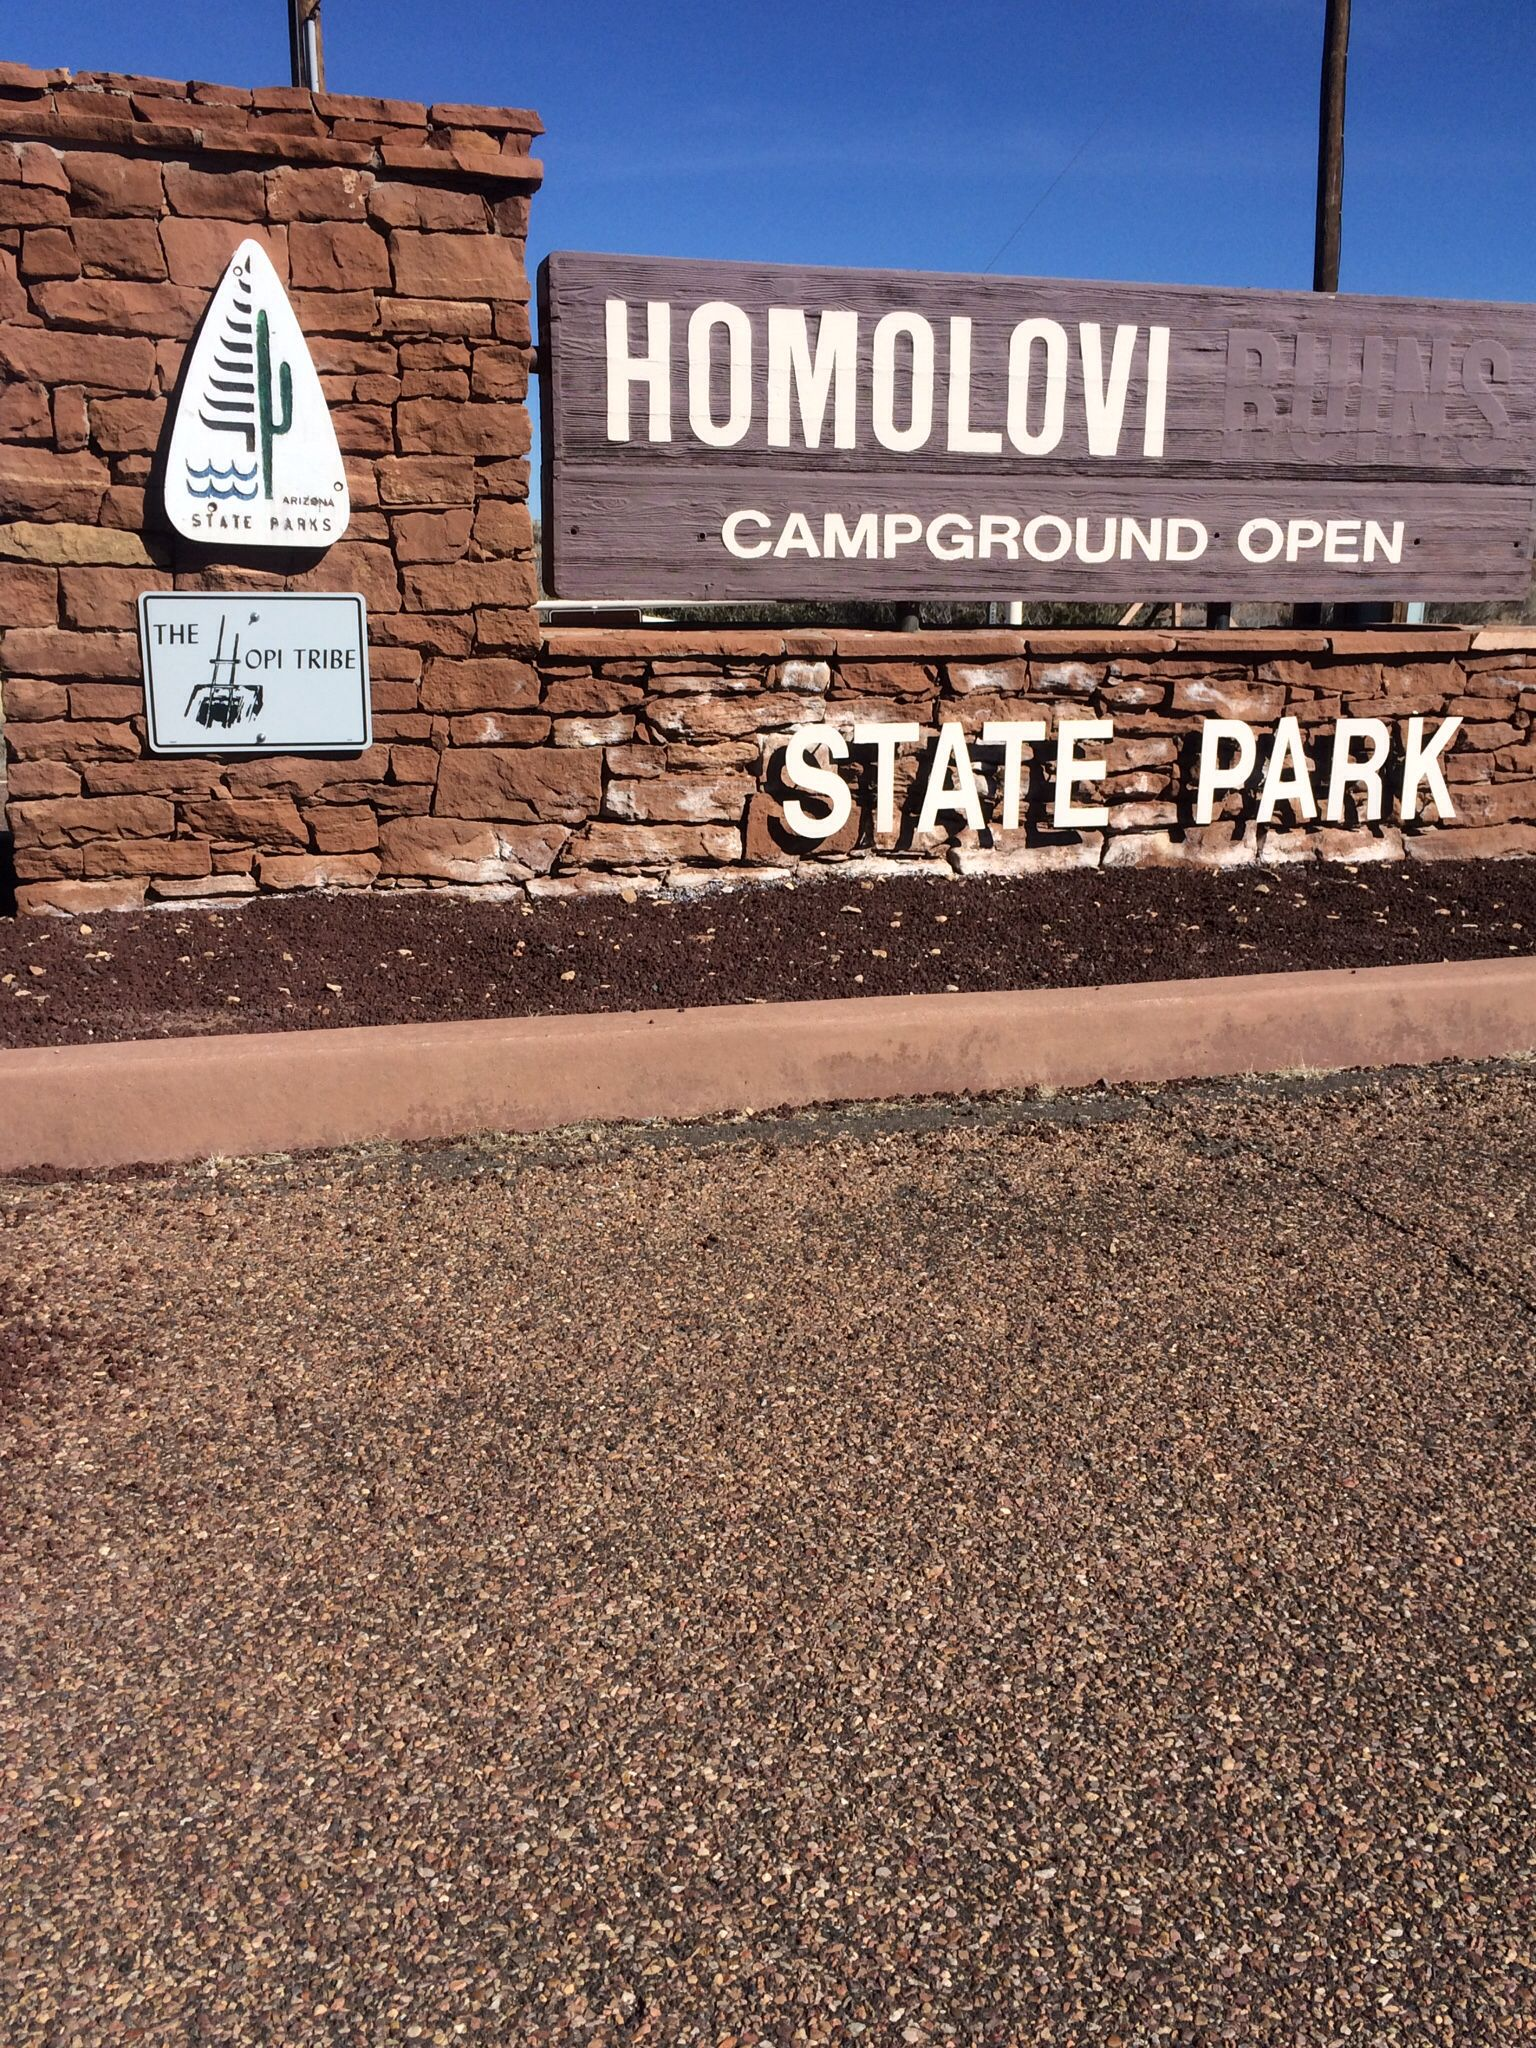 full hookup campgrounds in northern arizona best dating app to meet transgender